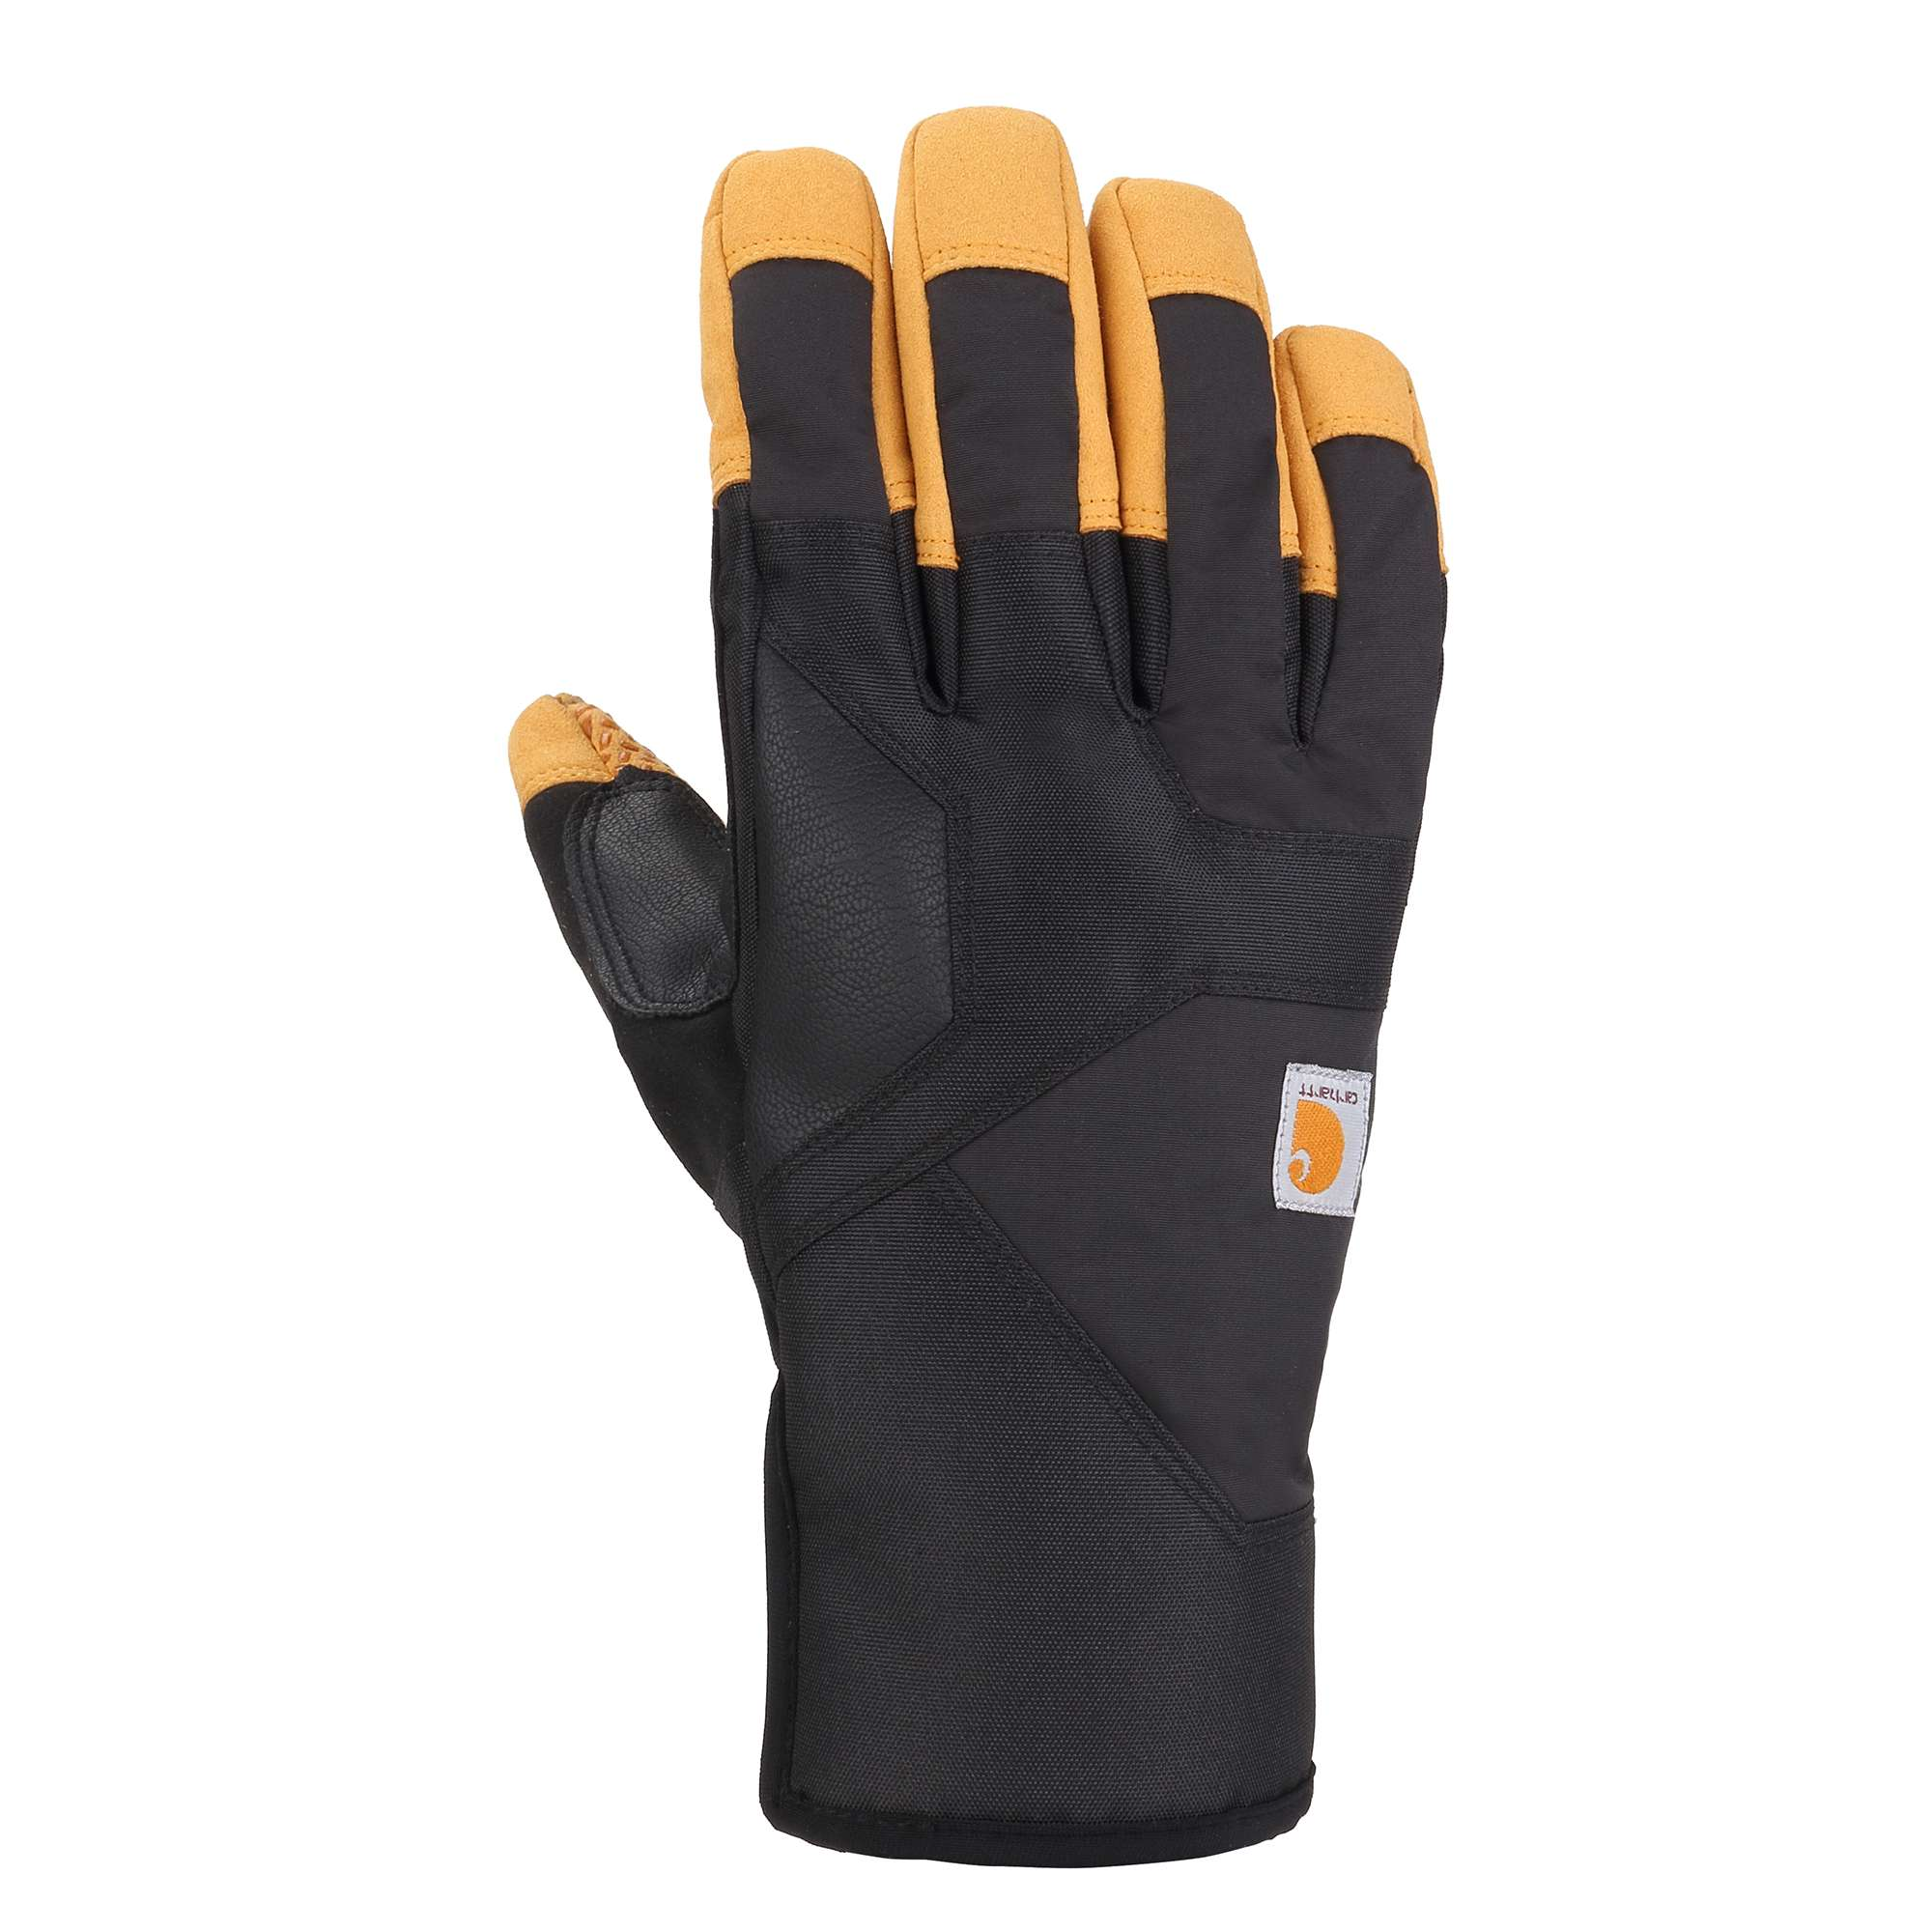 Carhartt Bad Axe Insulated Glove